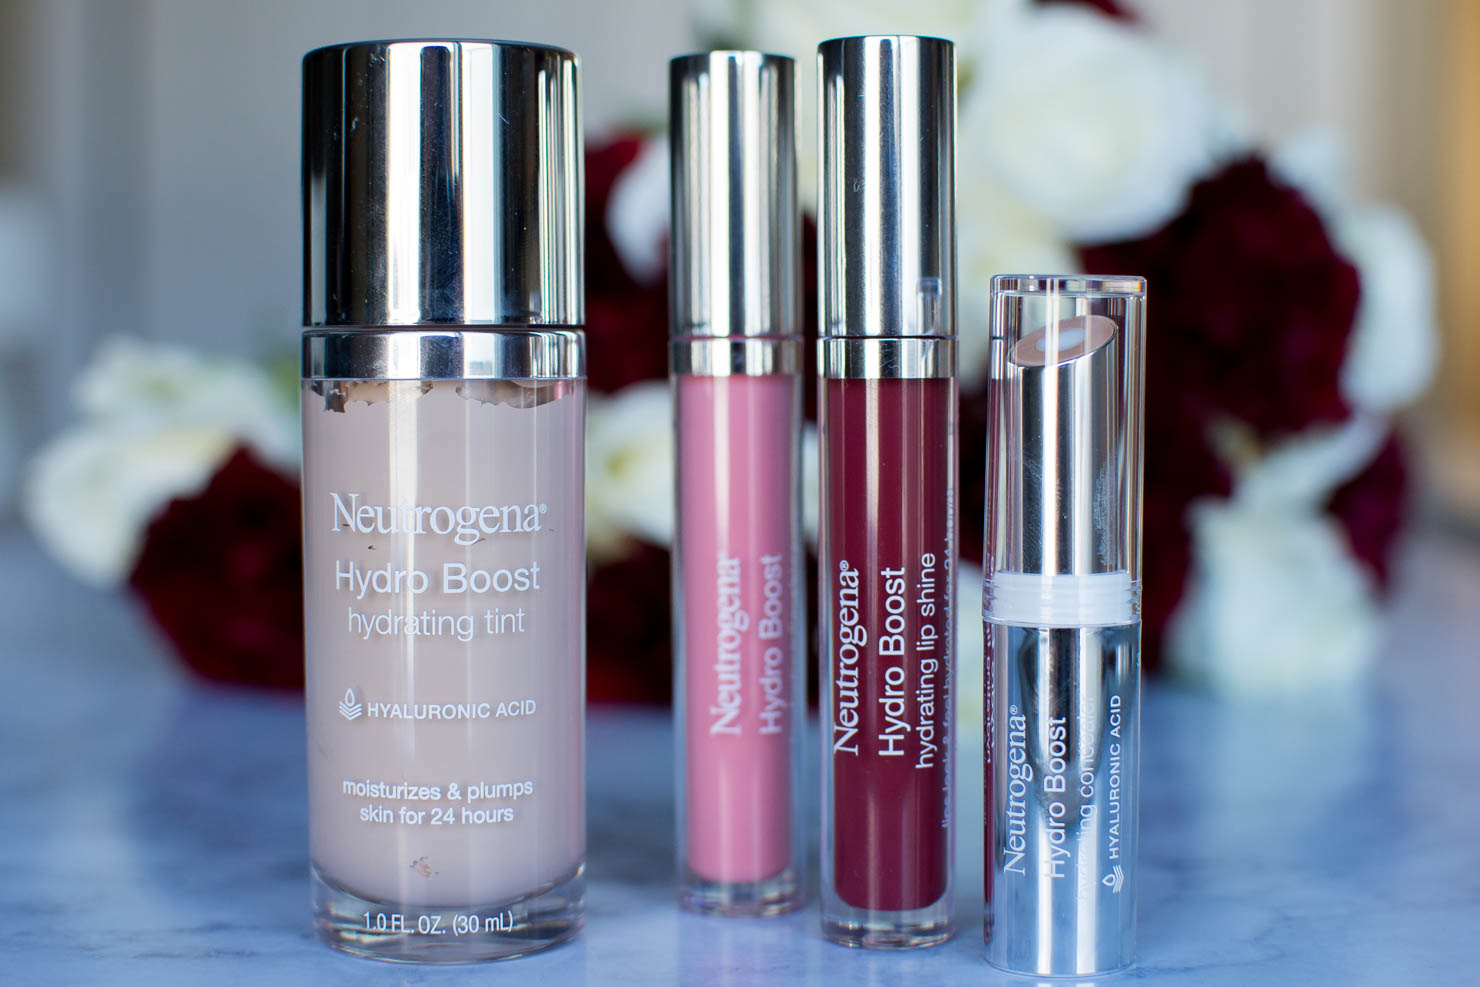 makeup that is good for your skin, Neutrogena Hydro boost Makeup, the makeup that's better for your skin than no makeup at all, hydrates and plumps, makeup thats good for your skin